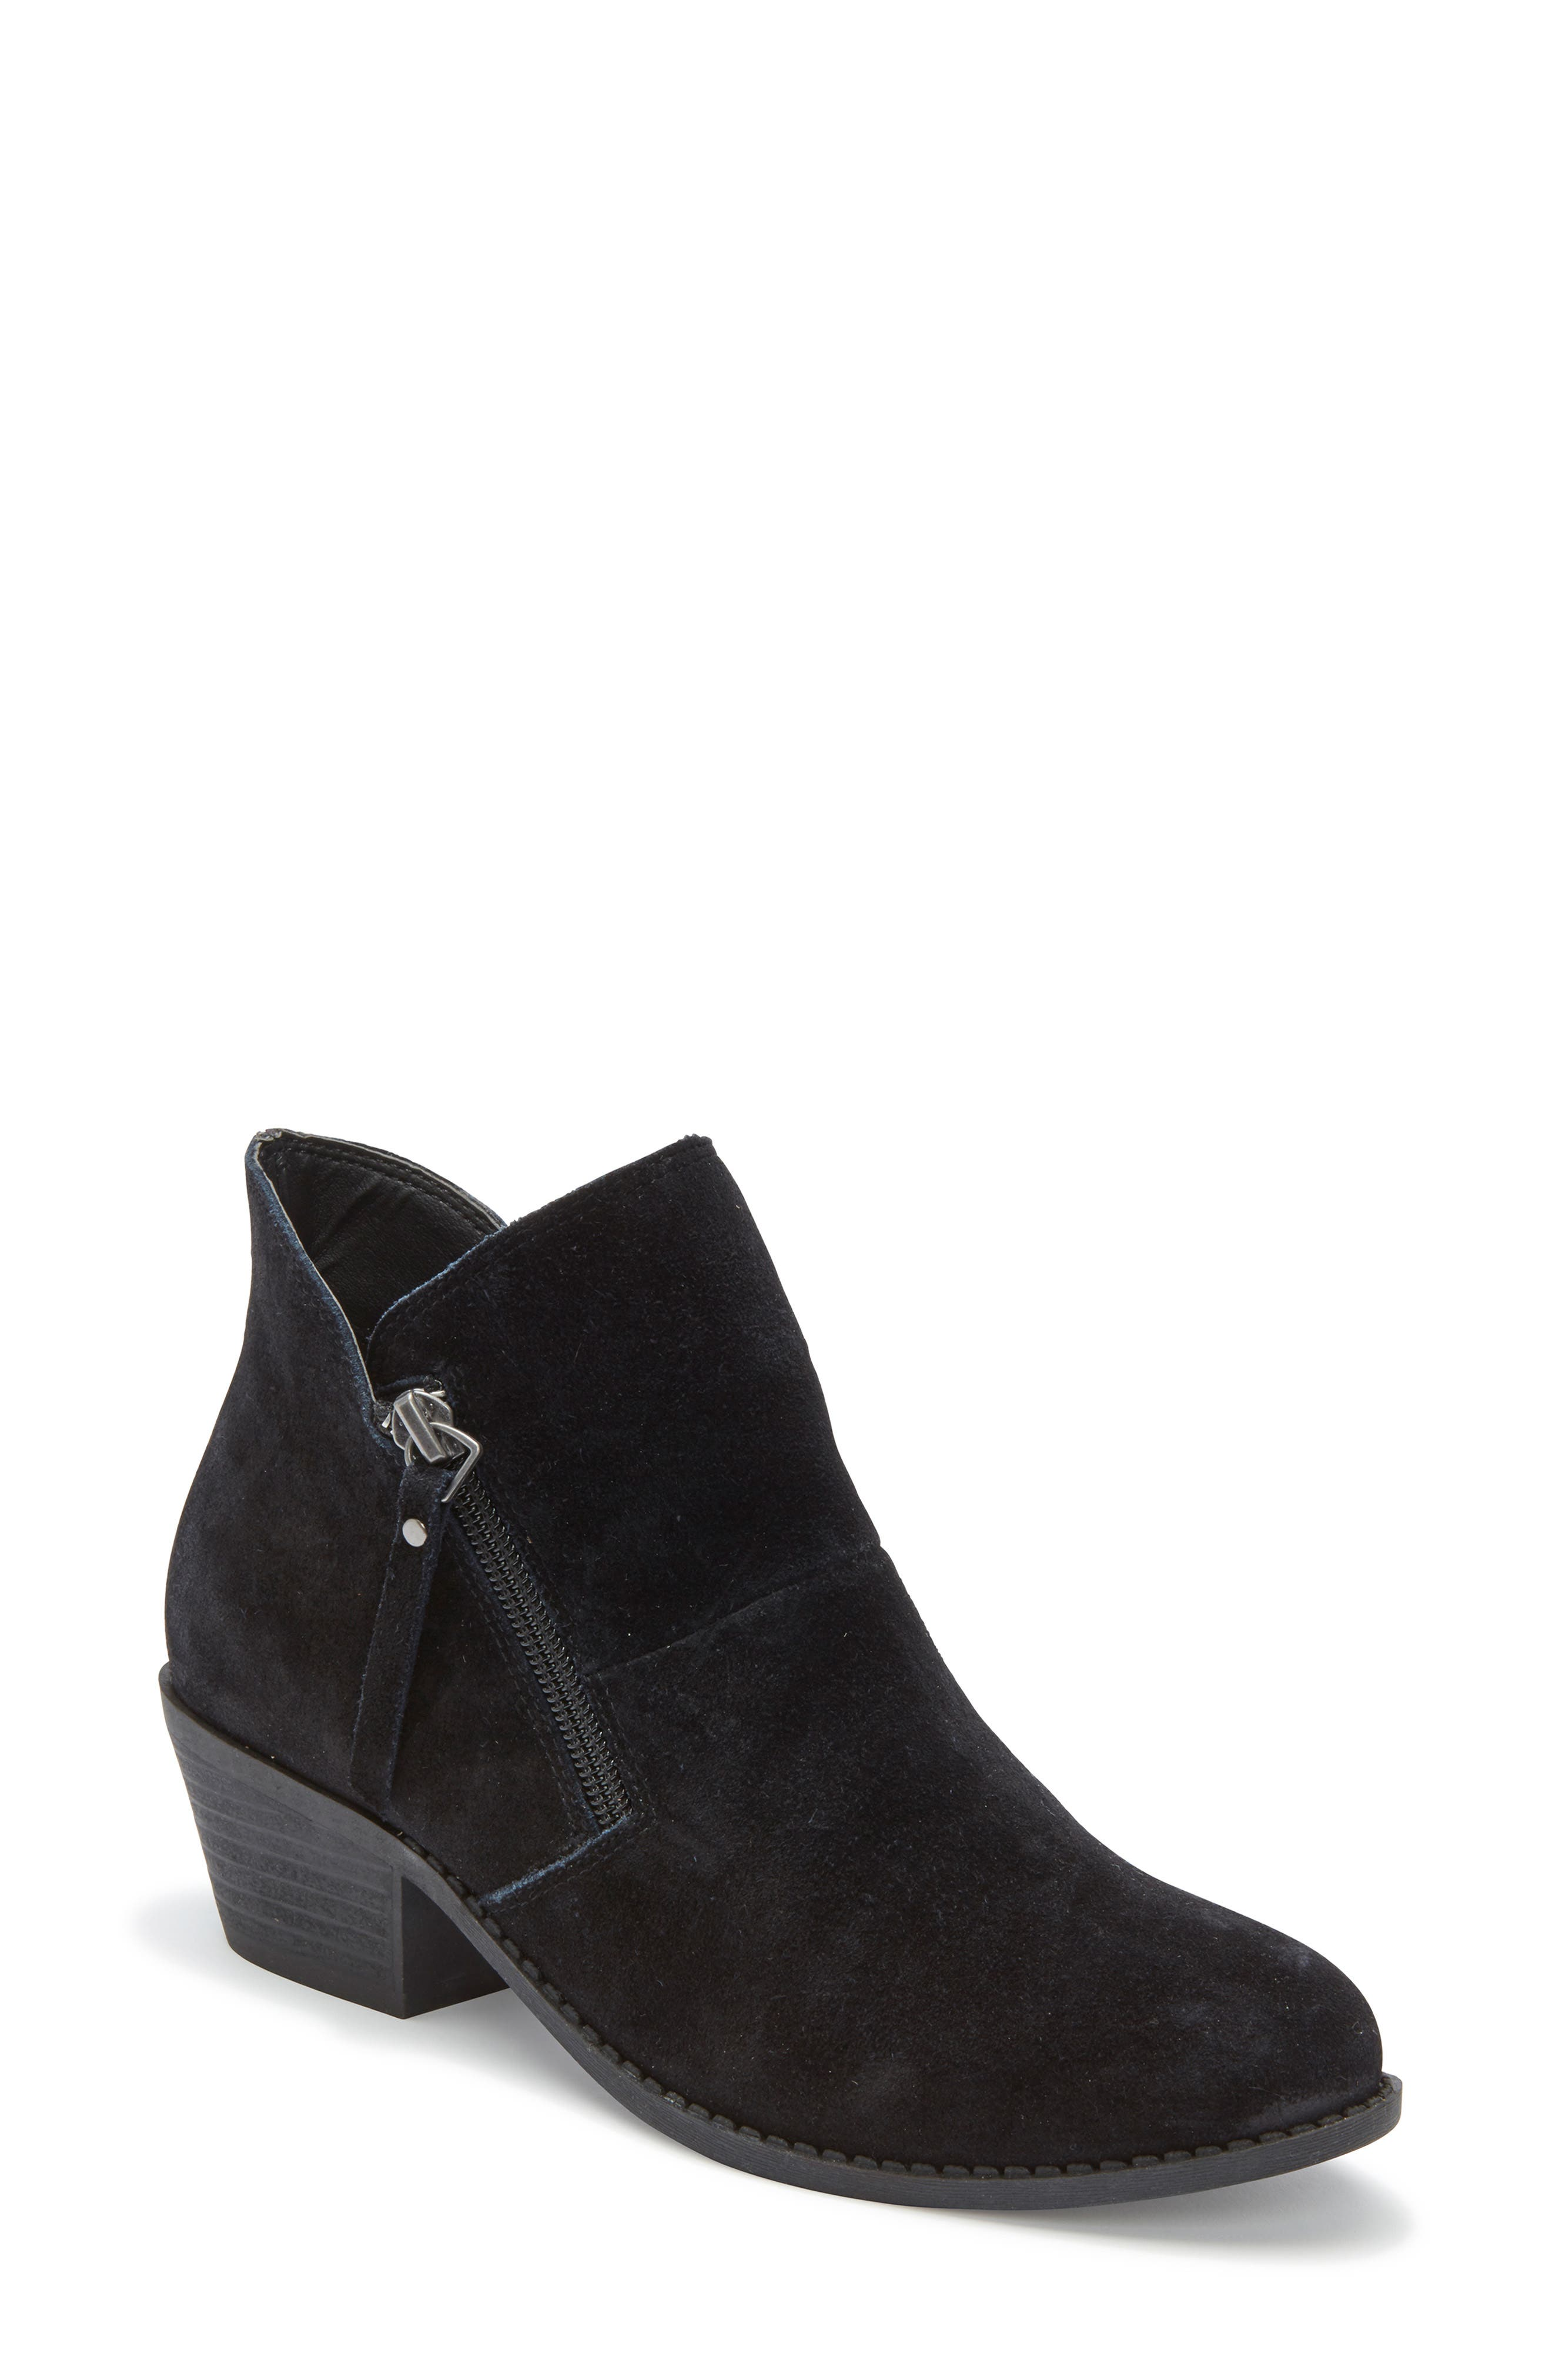 Me Too Zippora Bootie- Black